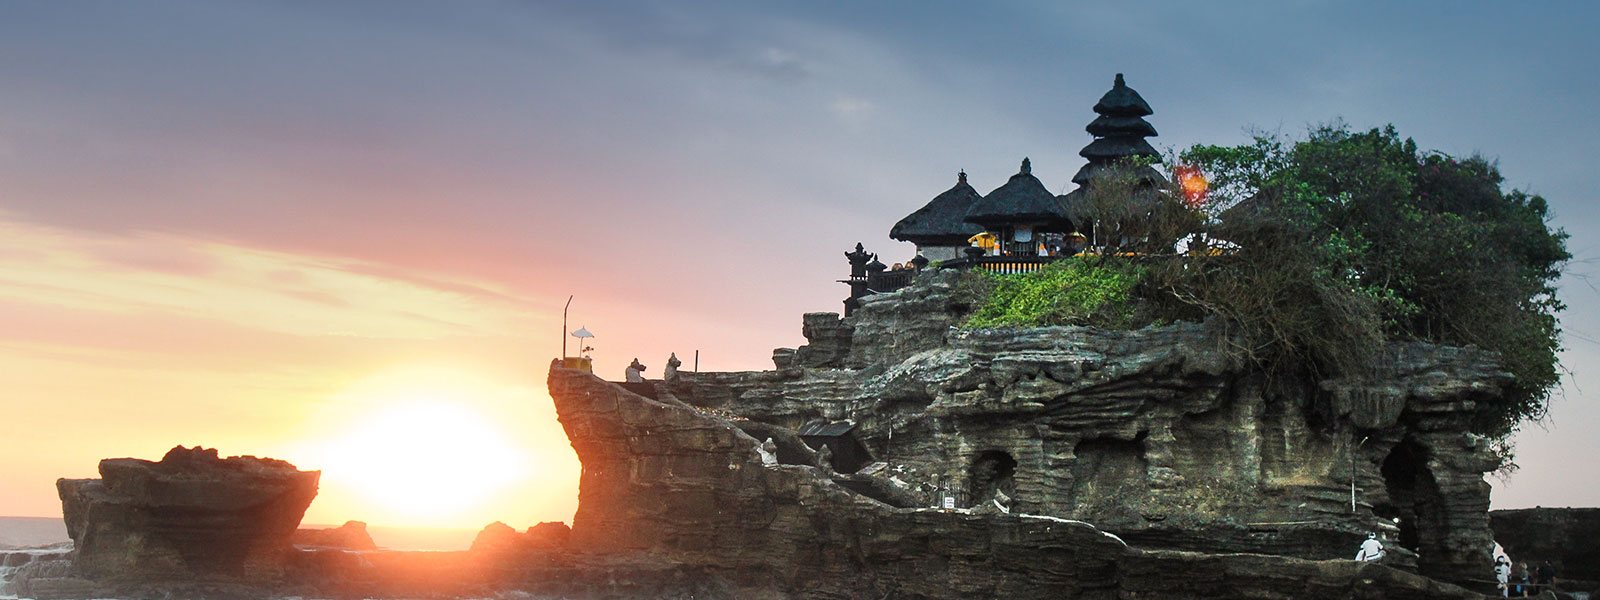 Temples in the sunset in Bali